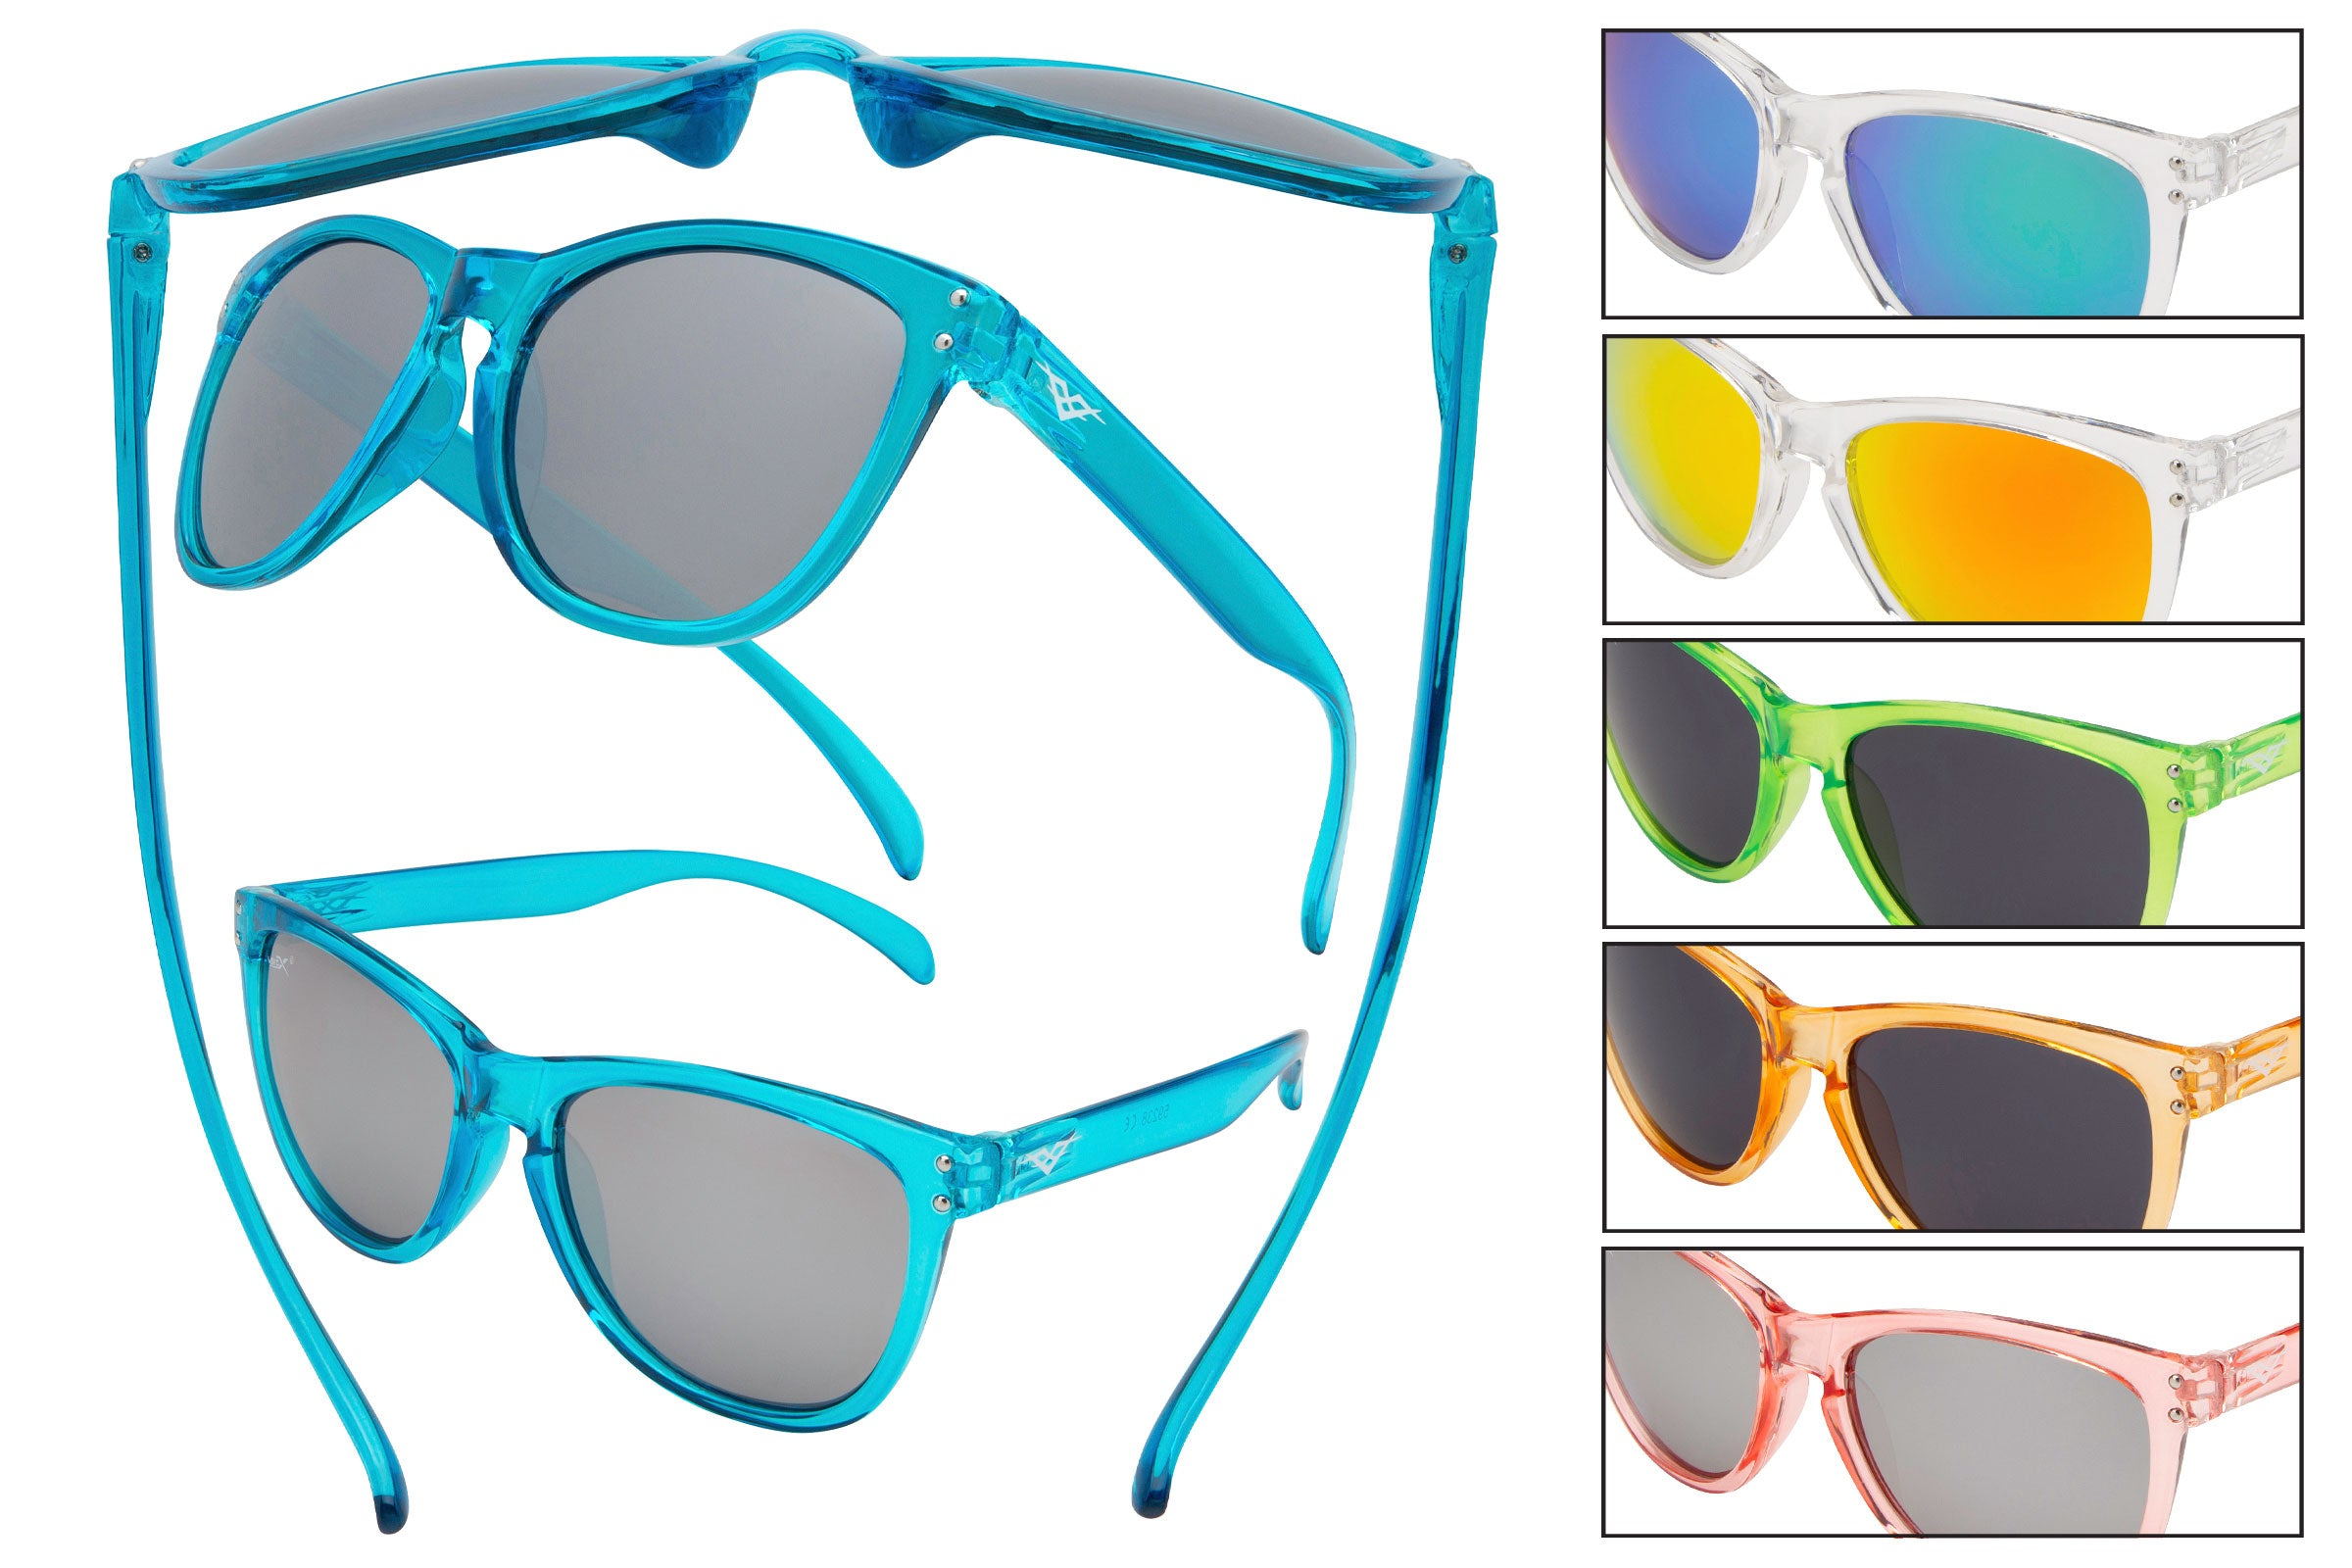 59238 - VertX PC Sport Sunglasses